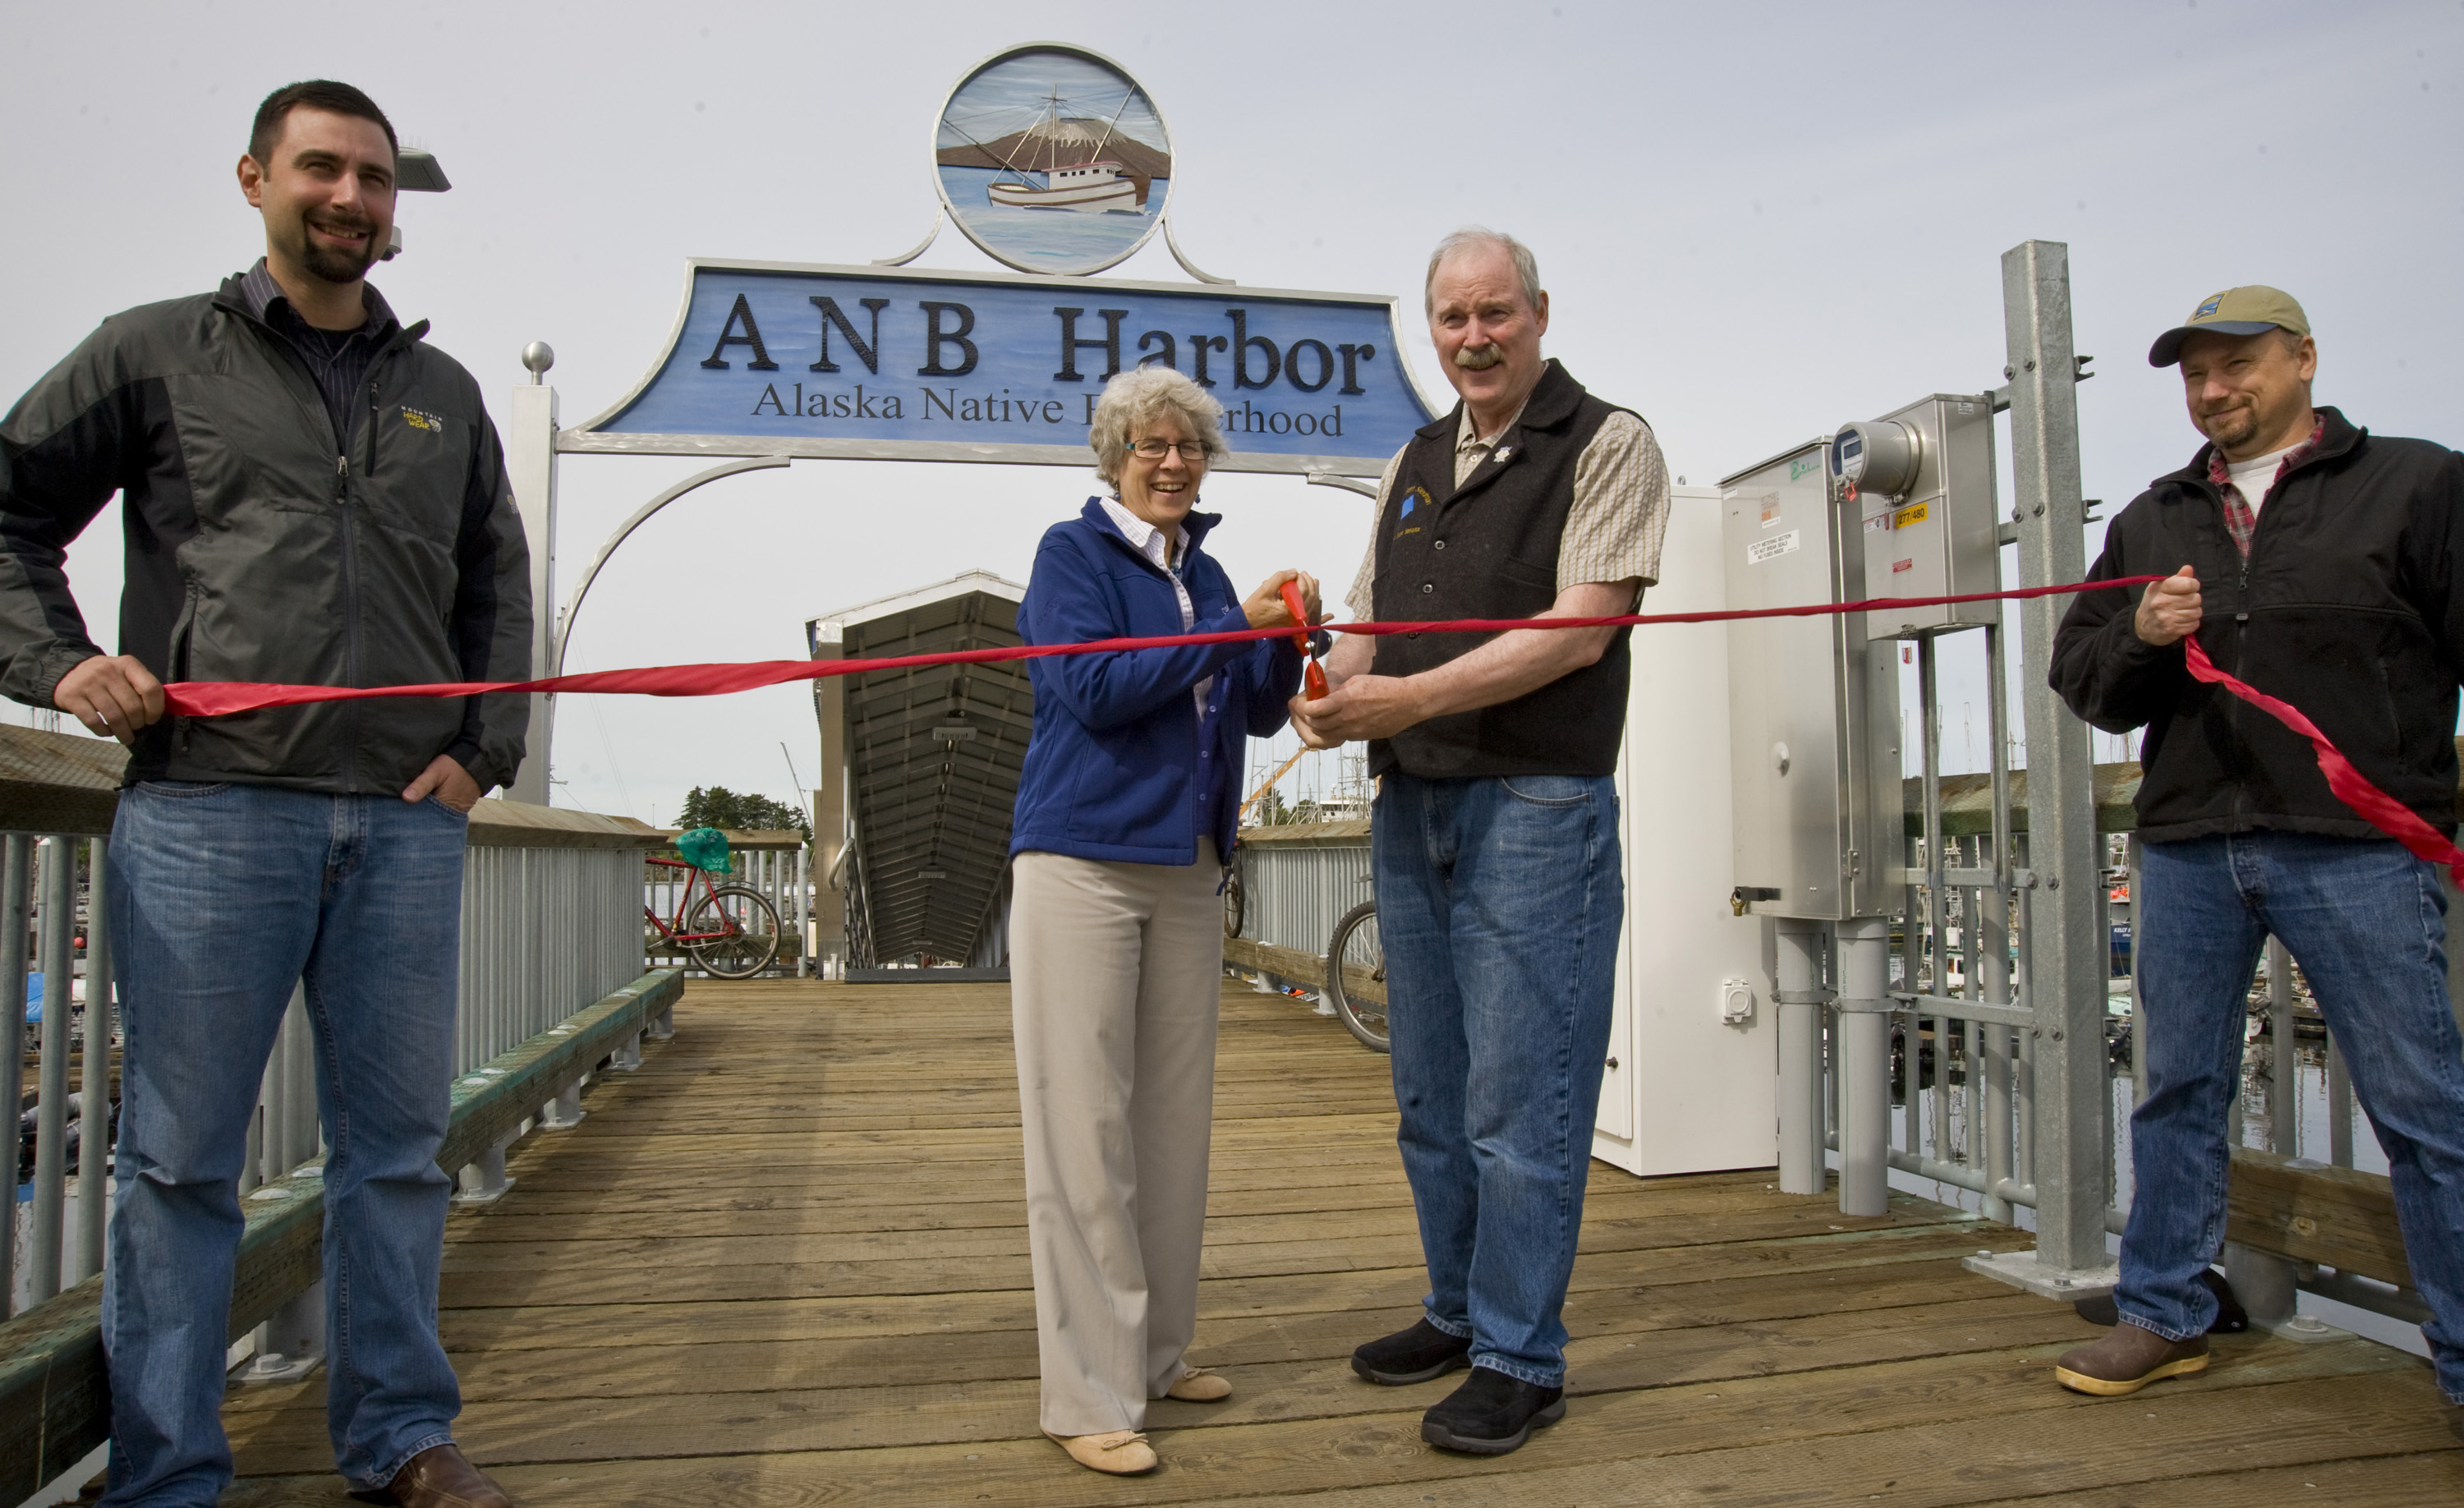 City Engineer Dan Tadic, Mayor Mim McConnell, Senator Stedman and Harbormaster Stan Eliason cut the ribbon at the new ANB Harbor (photo courtesy of James Poulson, Sitka Sentinel)